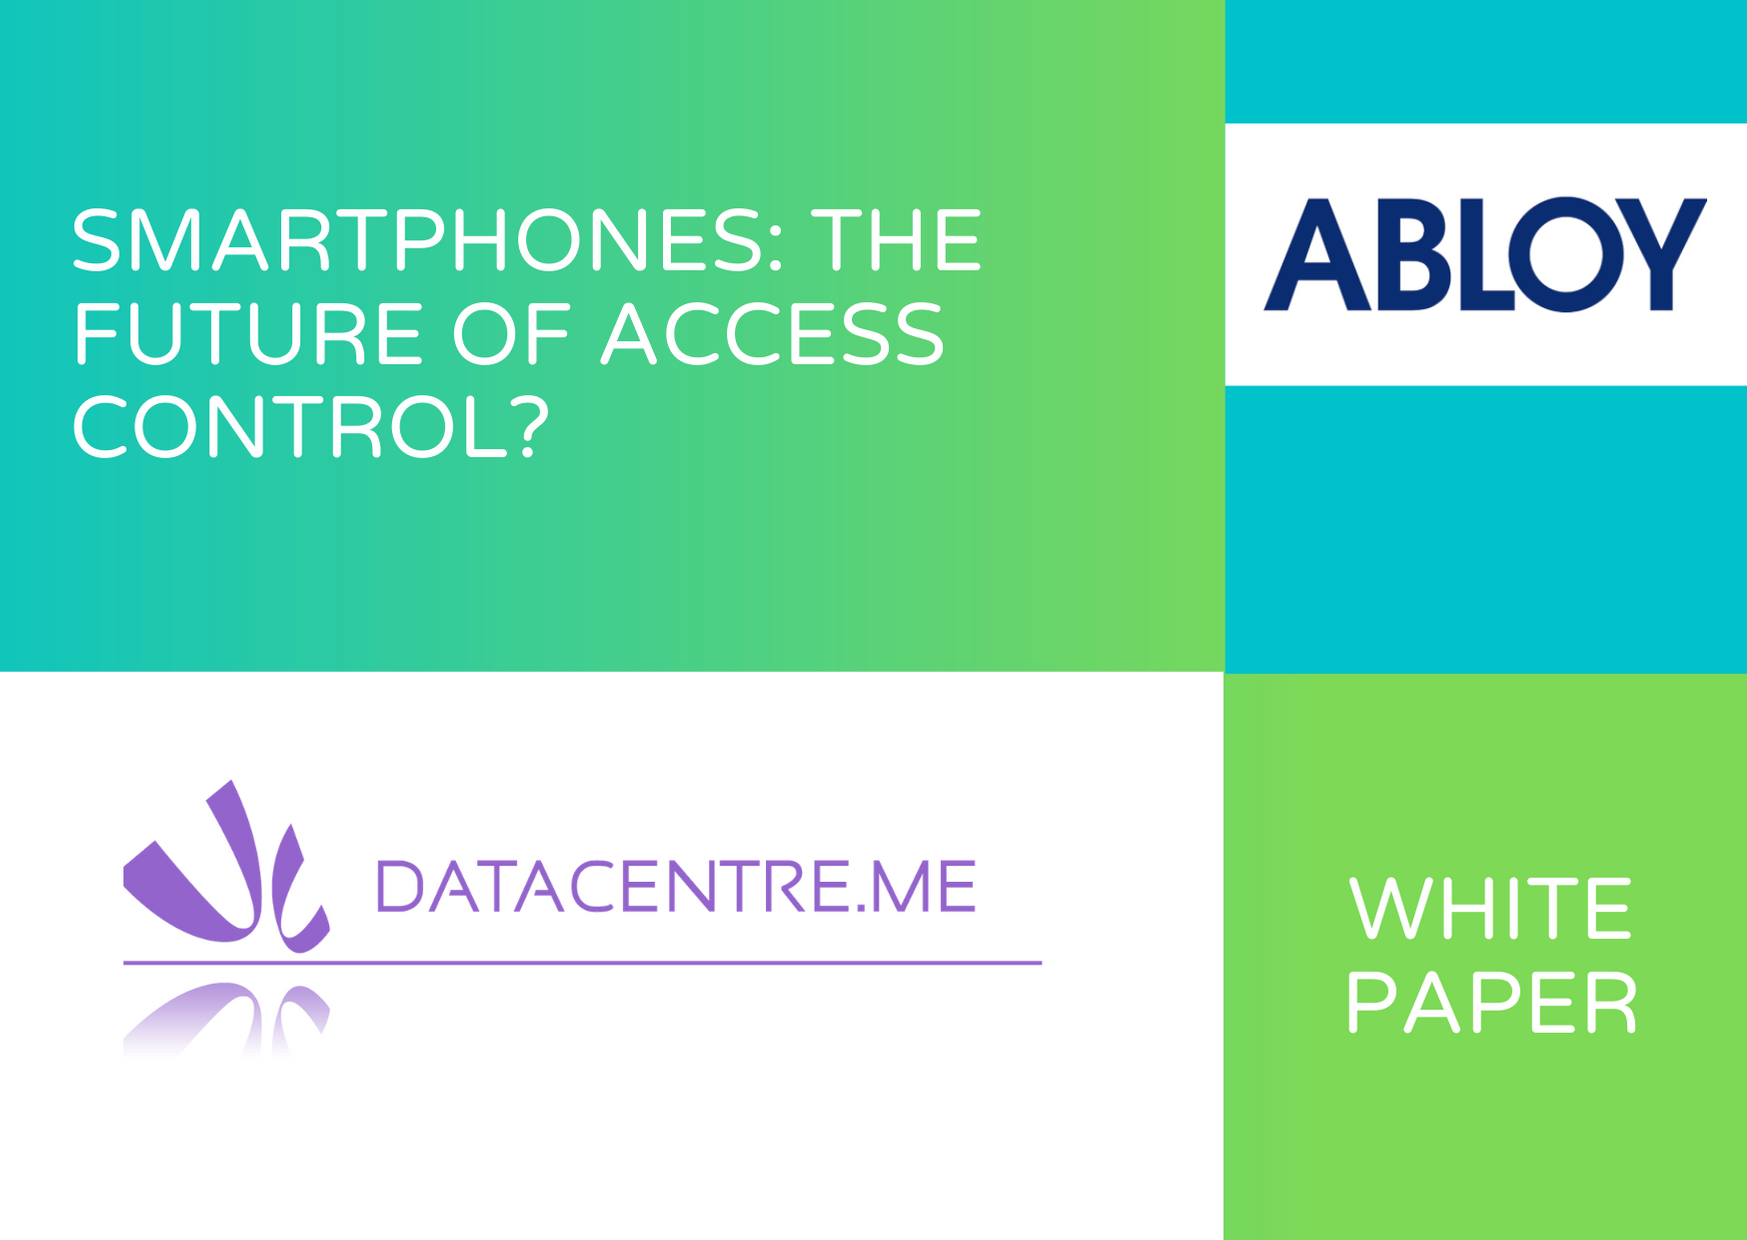 ABLOY White Paper Smartphones 2020